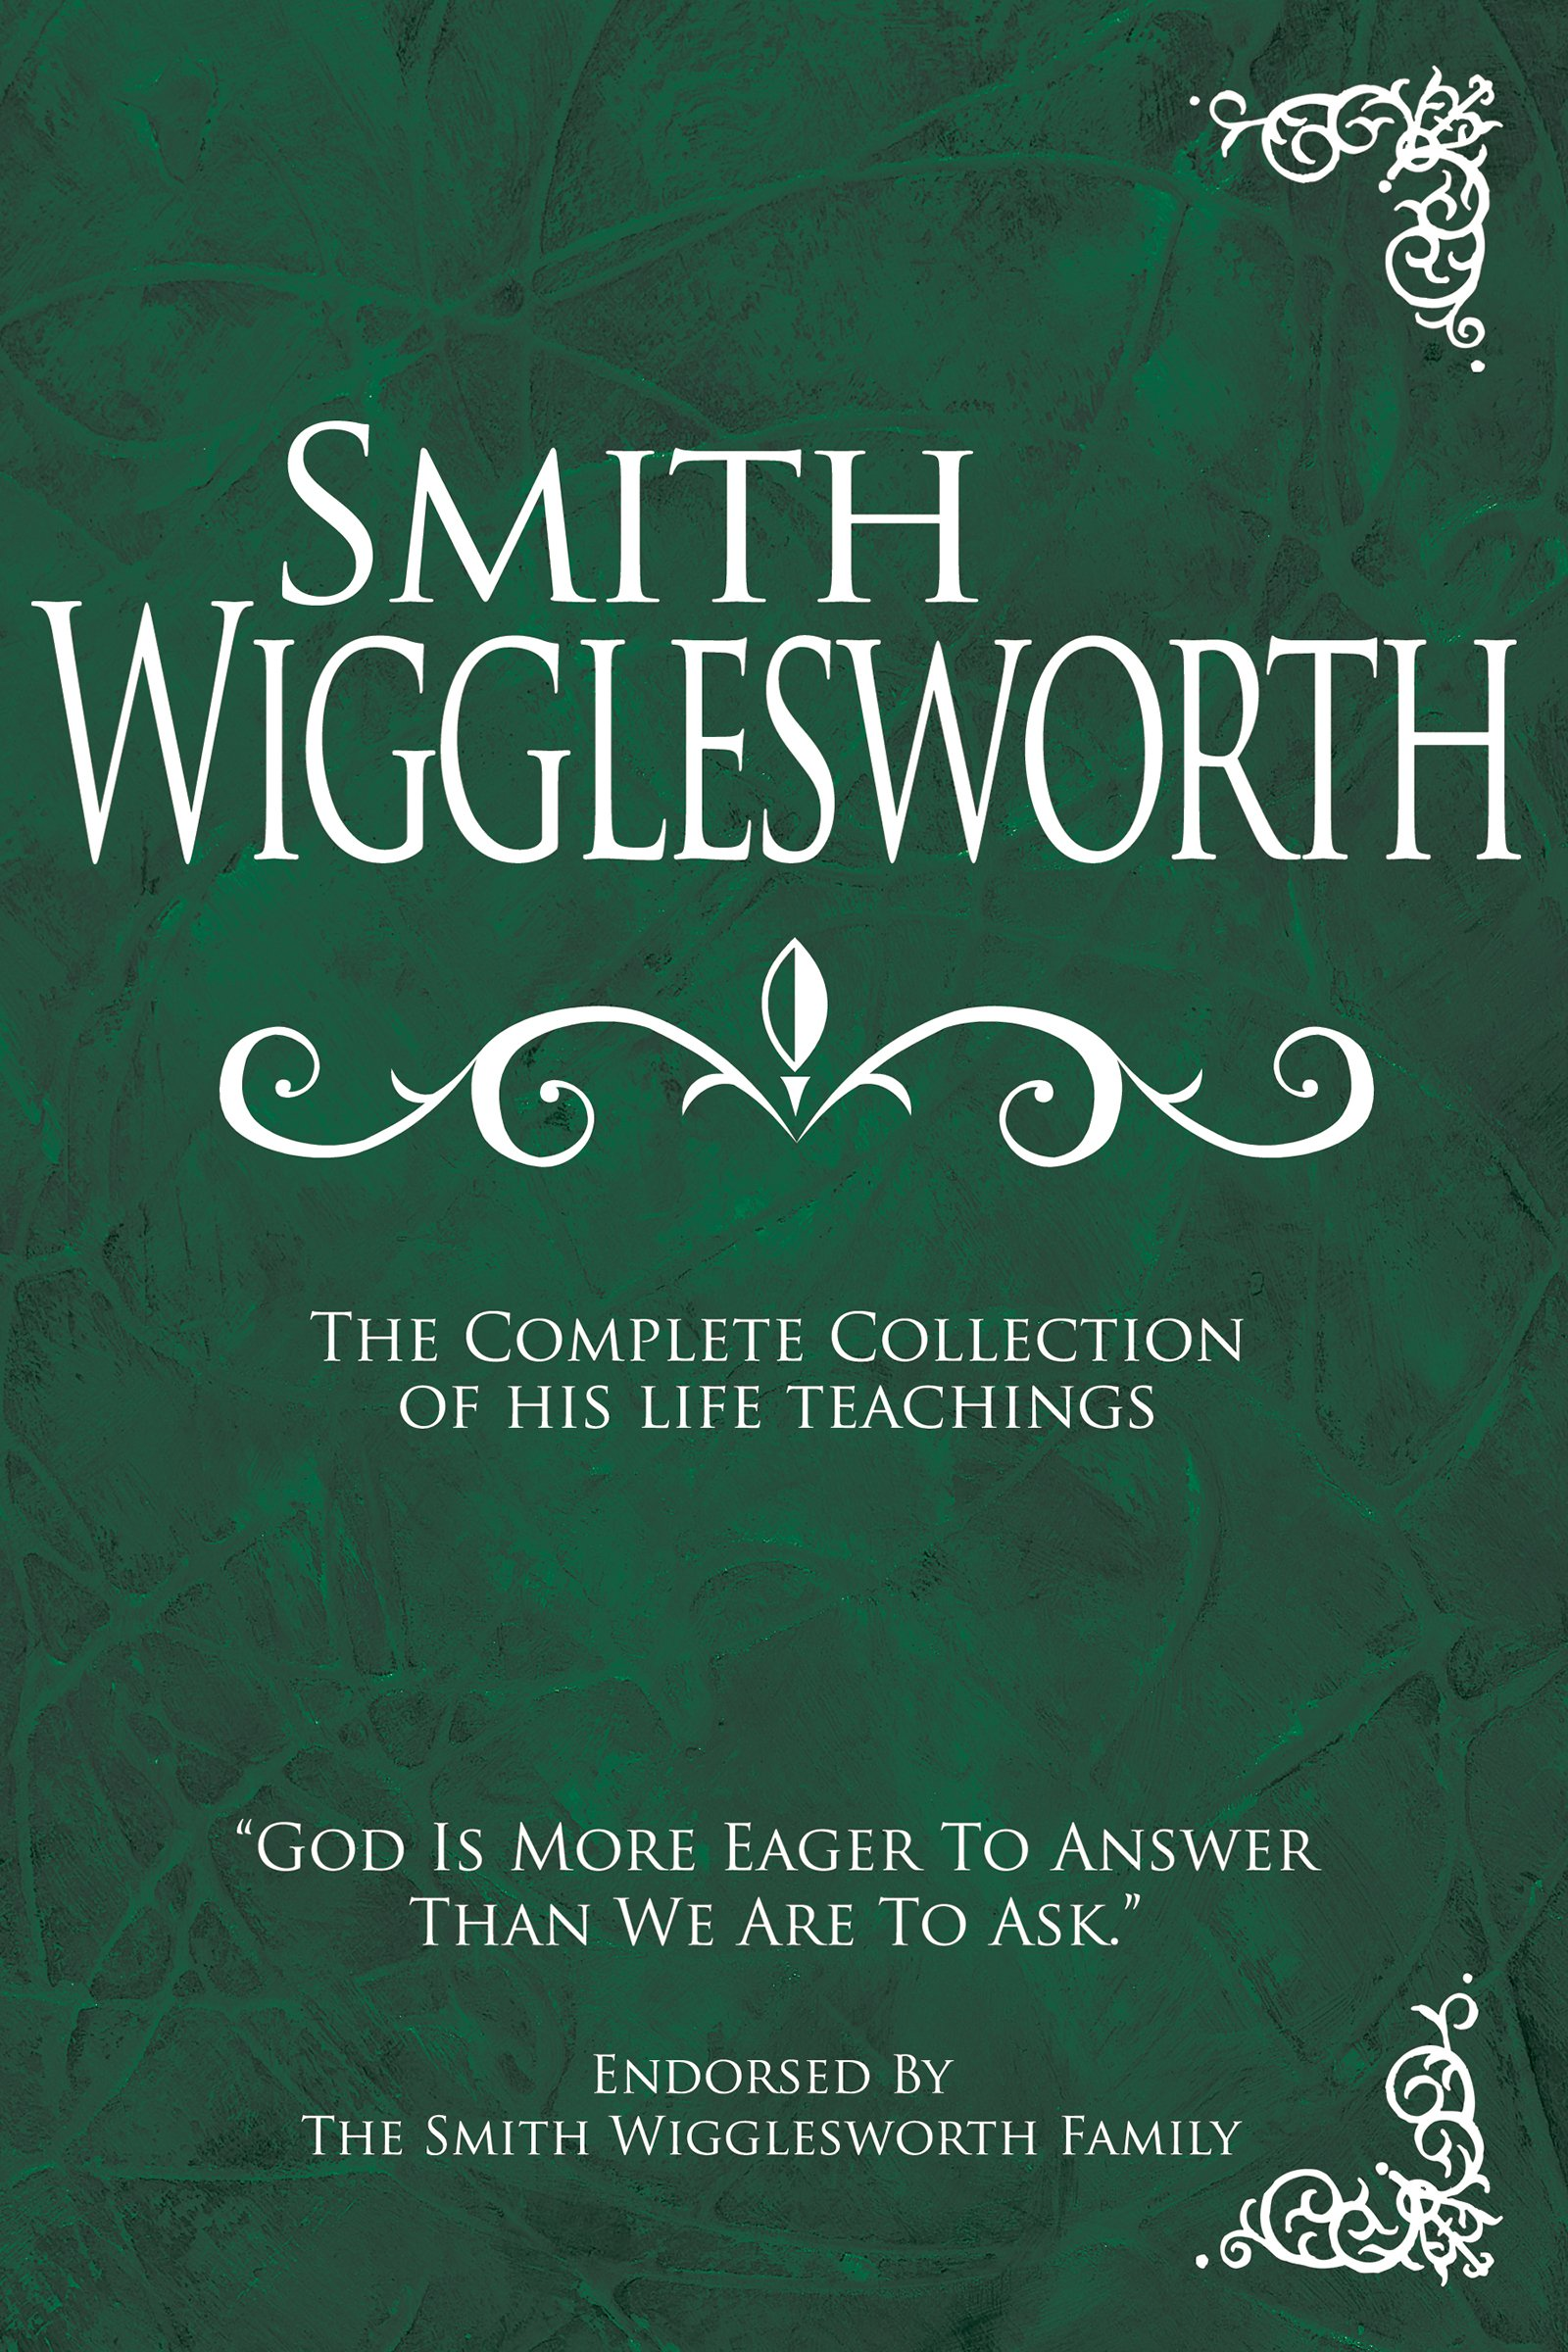 Smith Wigglesworth: The Complete Collection of His Life Teachings by Lake Book